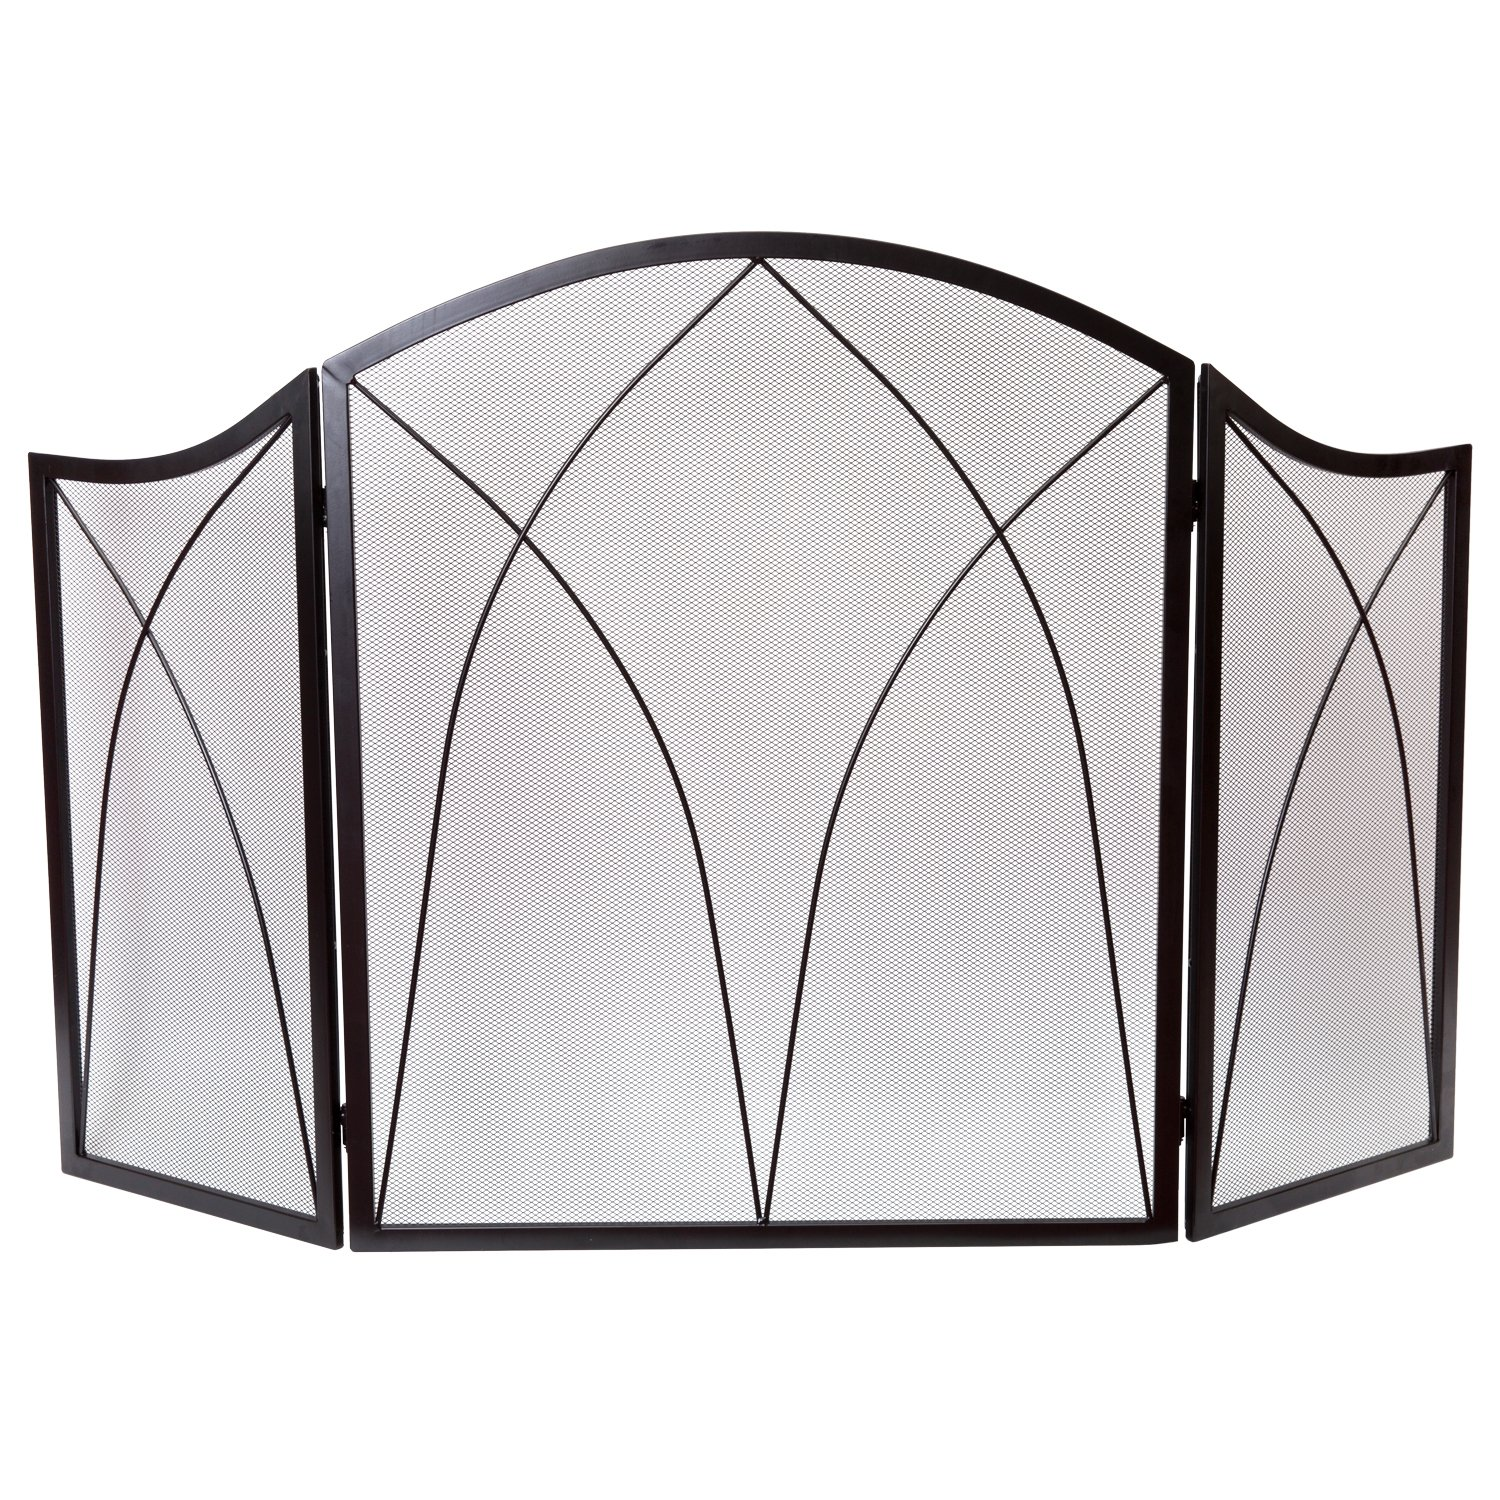 DOEWORKS Three Panel Basic Arch Fireplace Screens